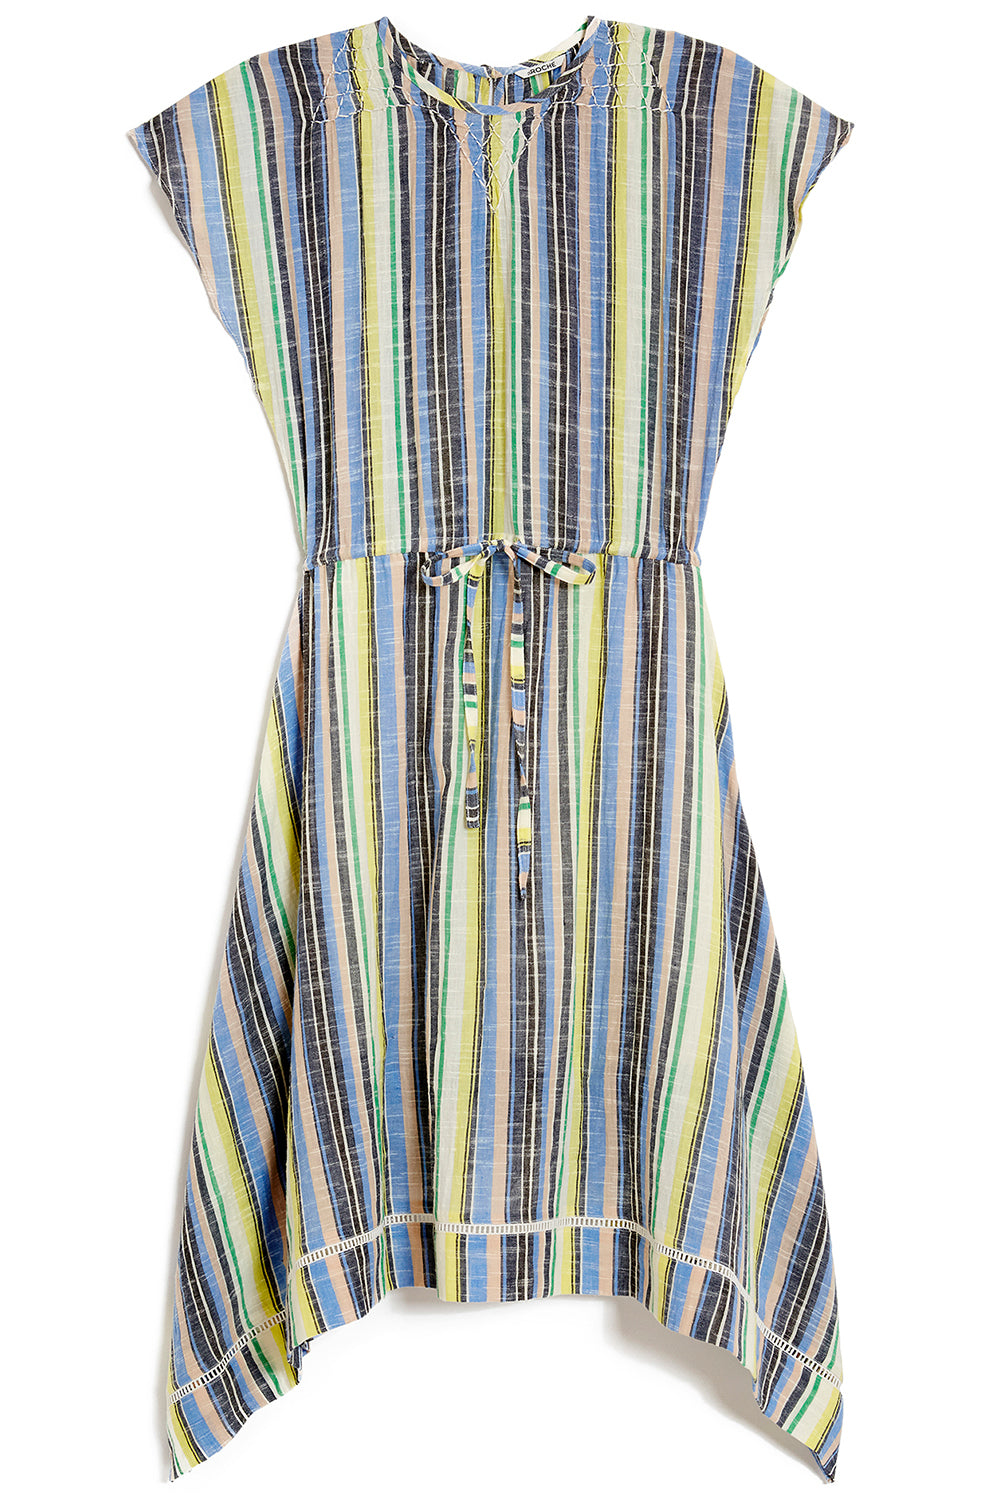 Monterey Dress in Multicolored Stripes